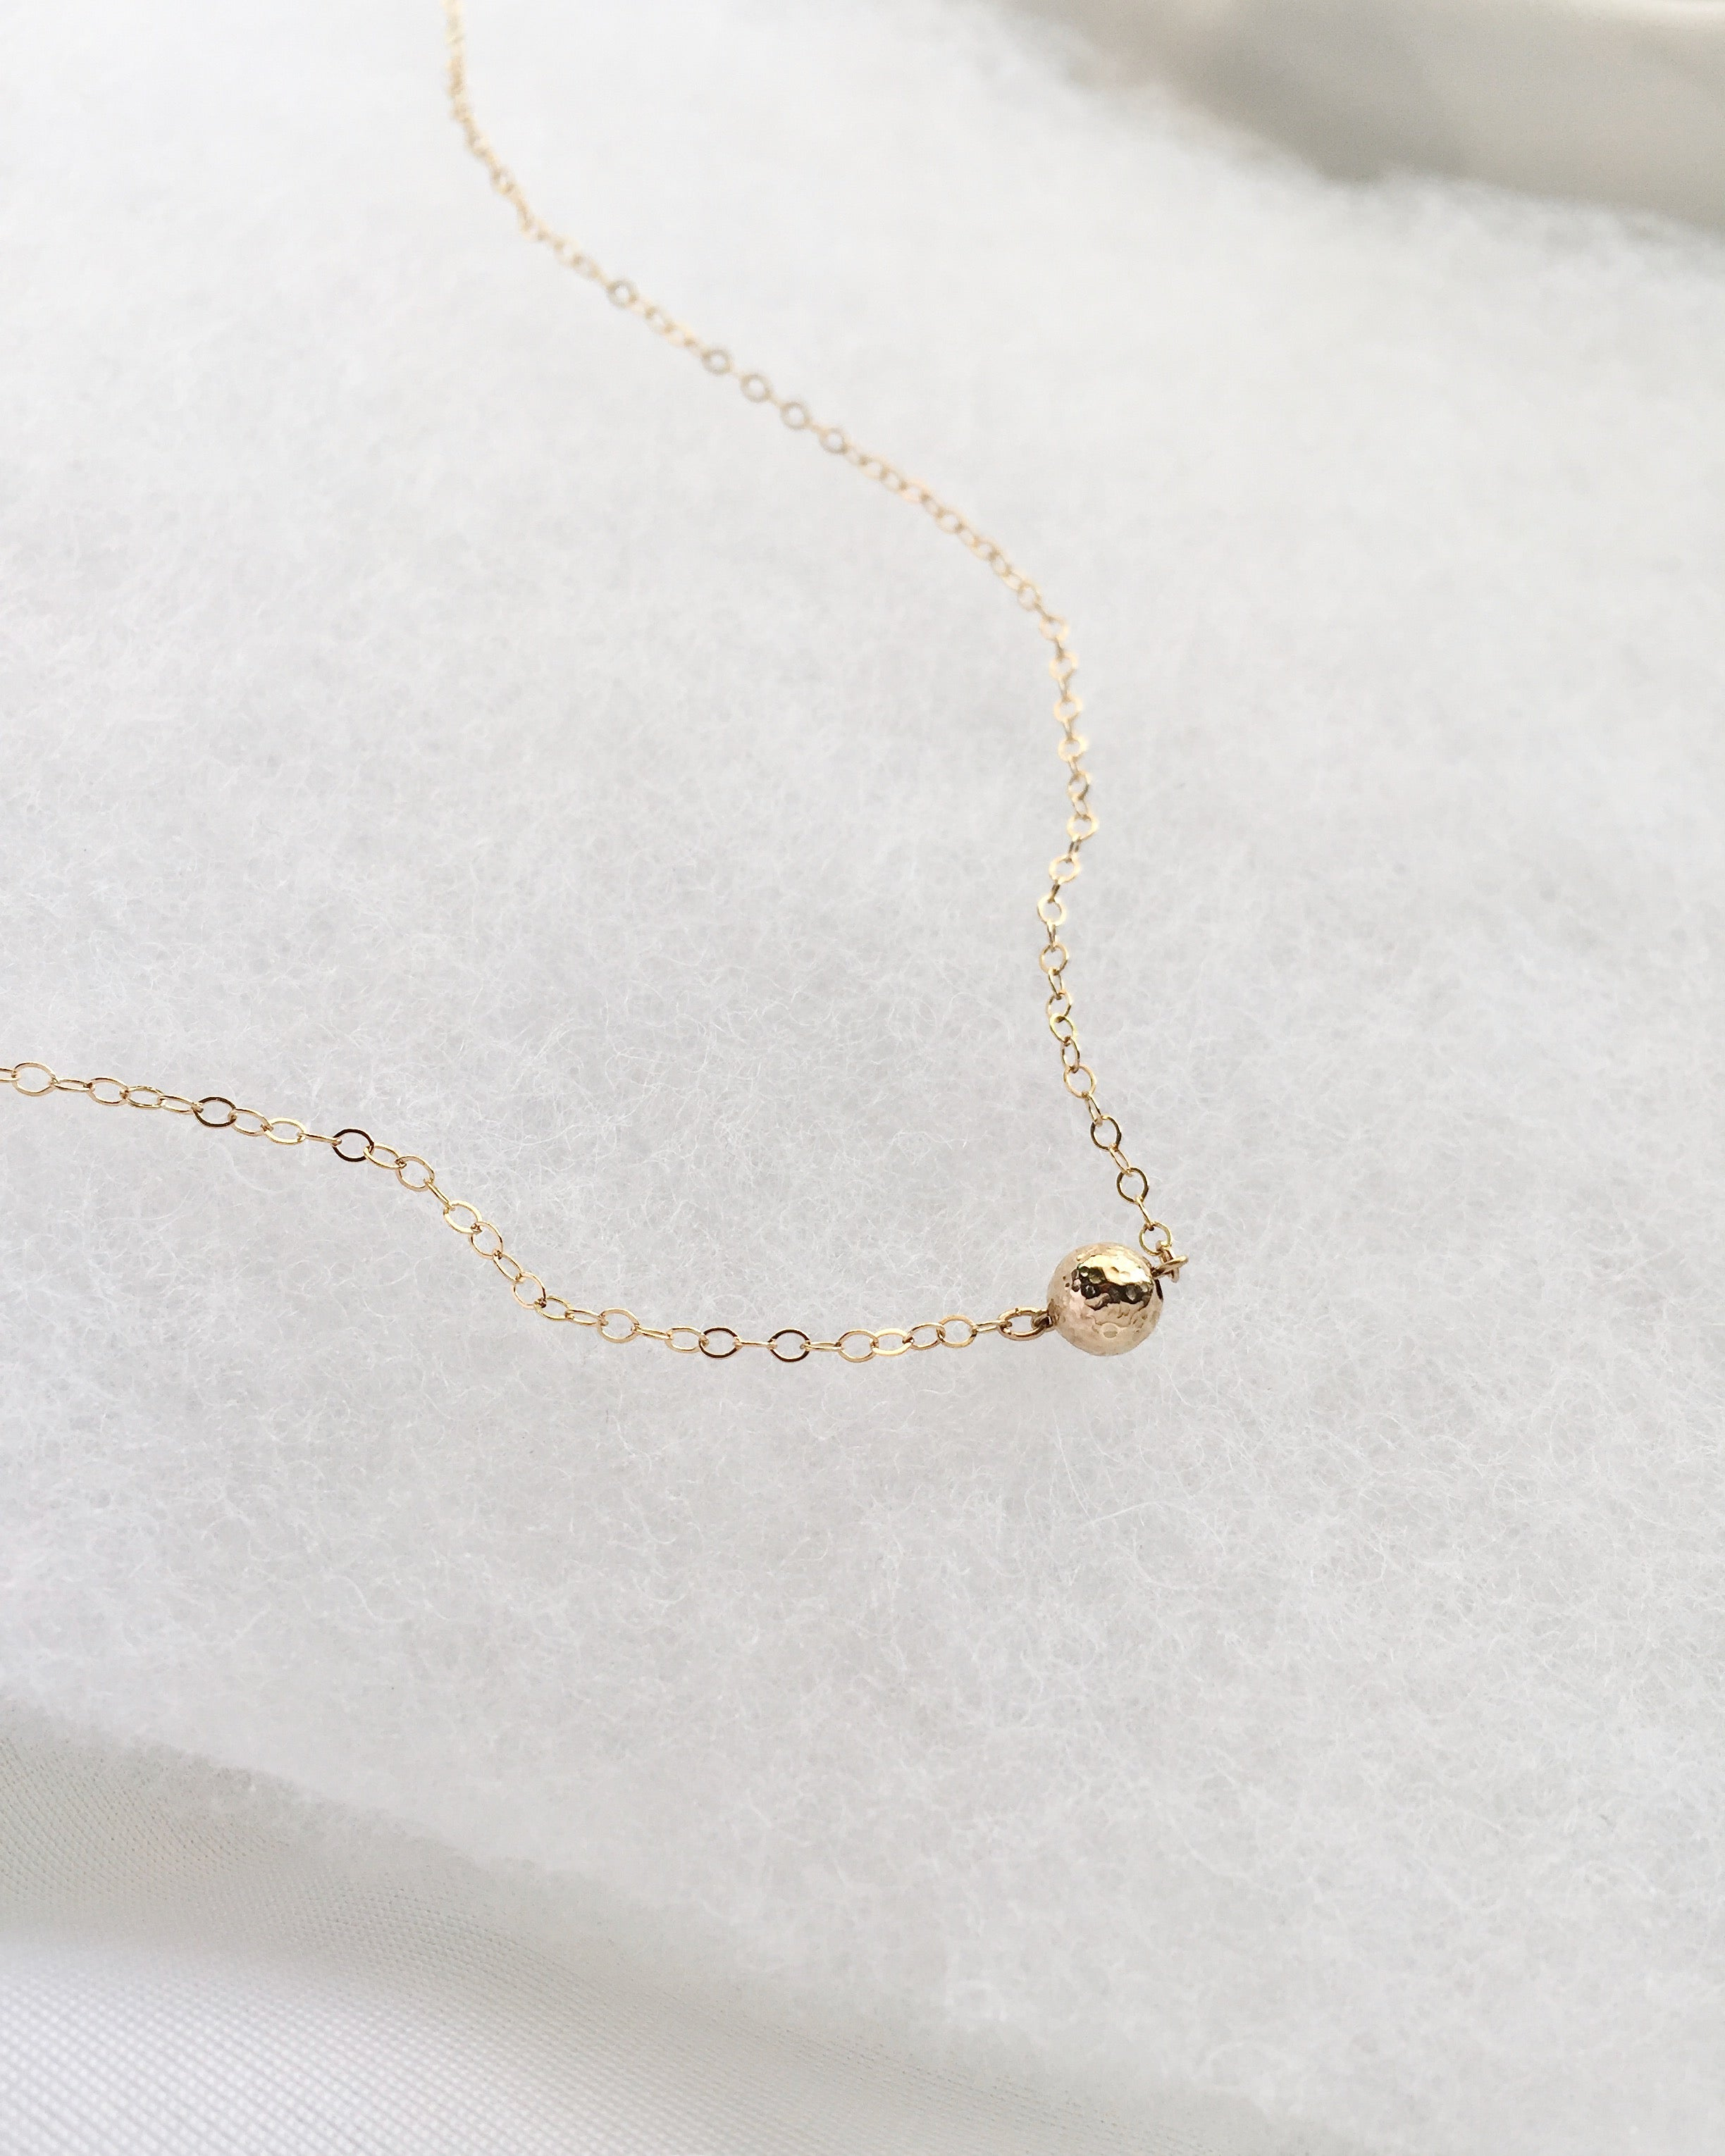 Dainty Gold Ball Necklace | Delicate Choker Necklace | IB Jewelry